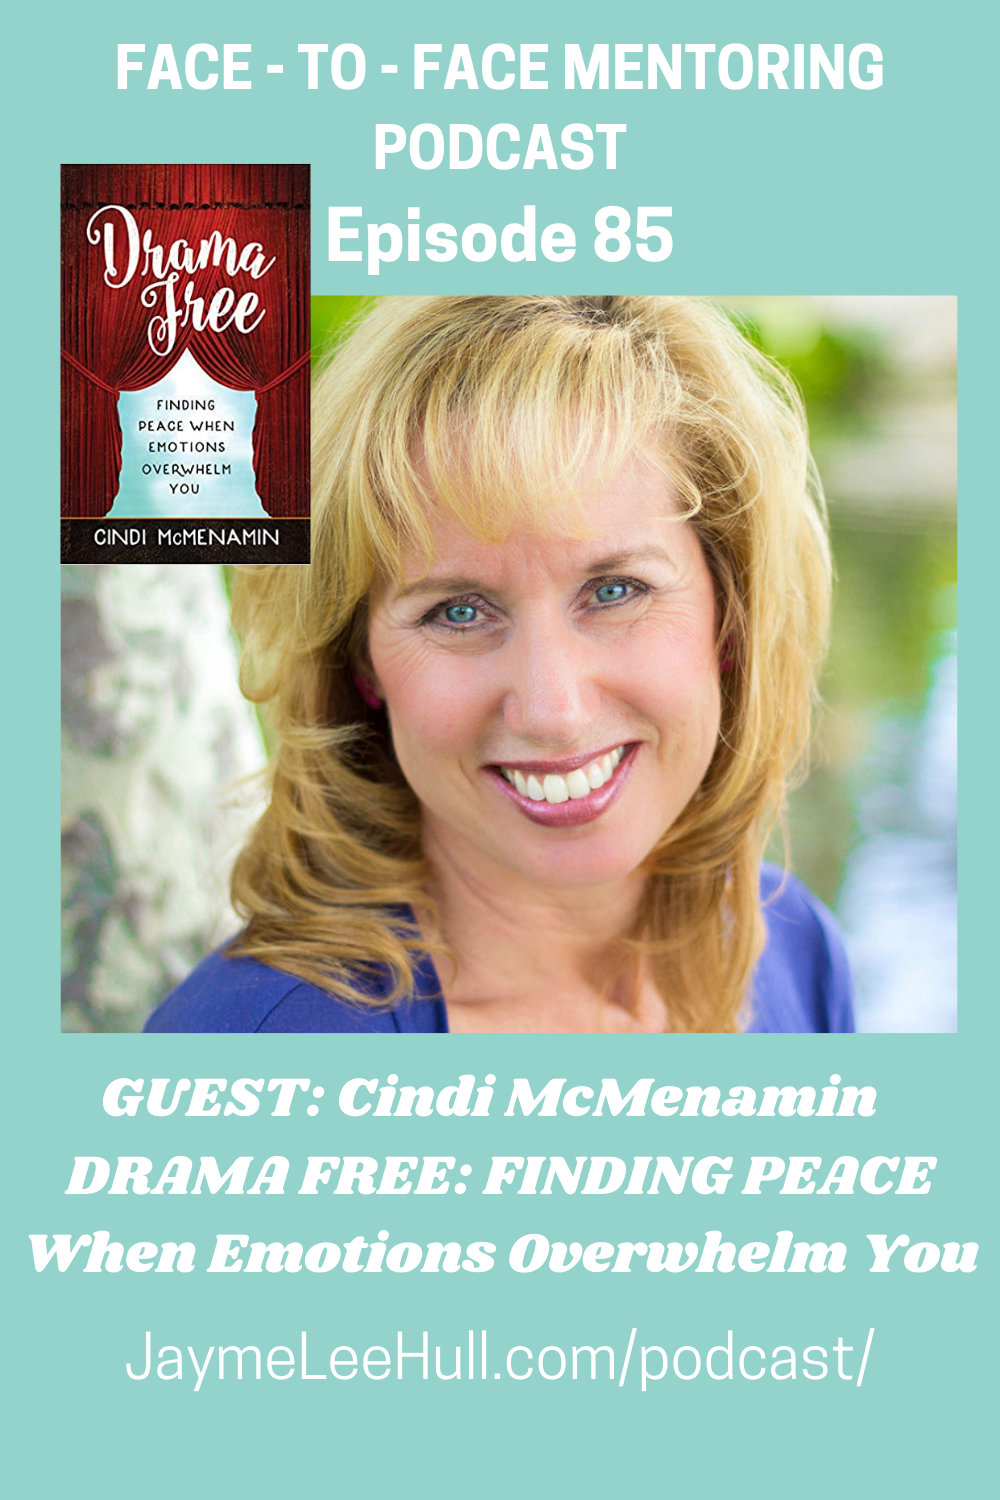 Today's Face to Face Mentoring Podcast Episode focuses on Drama Free: Finding Peace When Emotions Overwhelm You with Author and Speaker Cindi McMenamin. Are you tired of the drama in your life? Listen today and receive mentoring wisdom and helpful tips for finding peace.